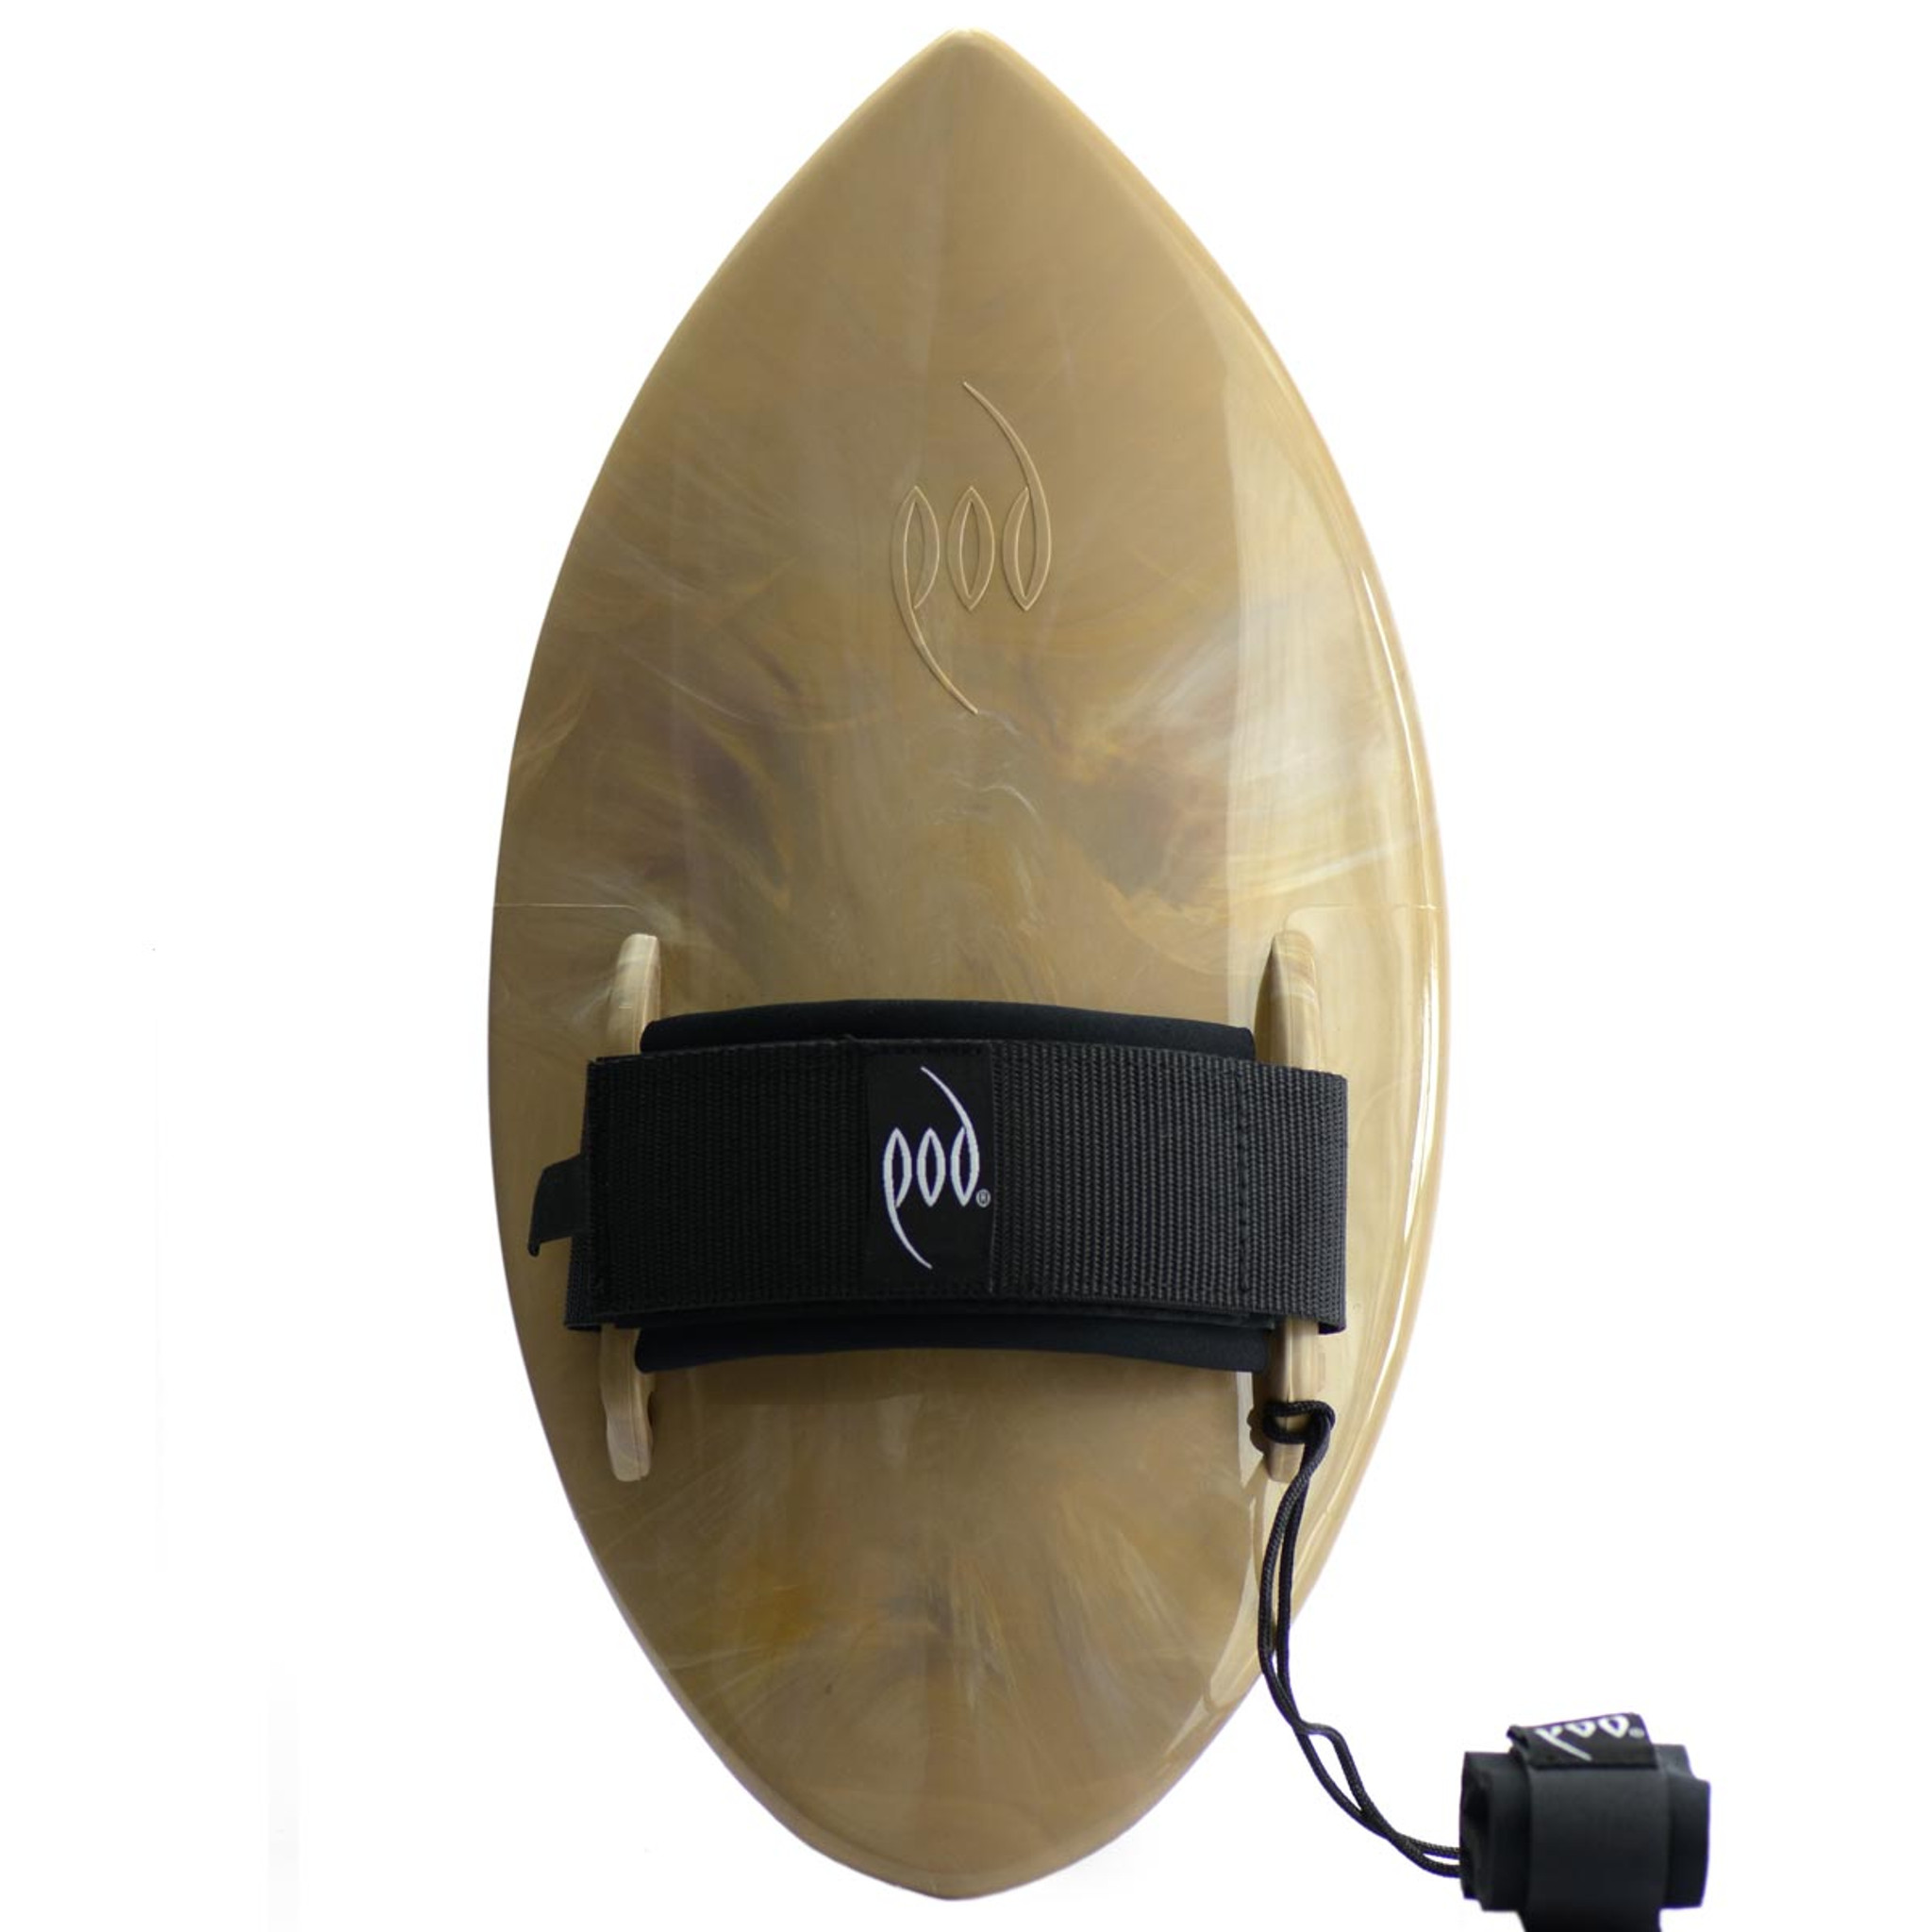 Beach Stone Limited Edition POD Handboards